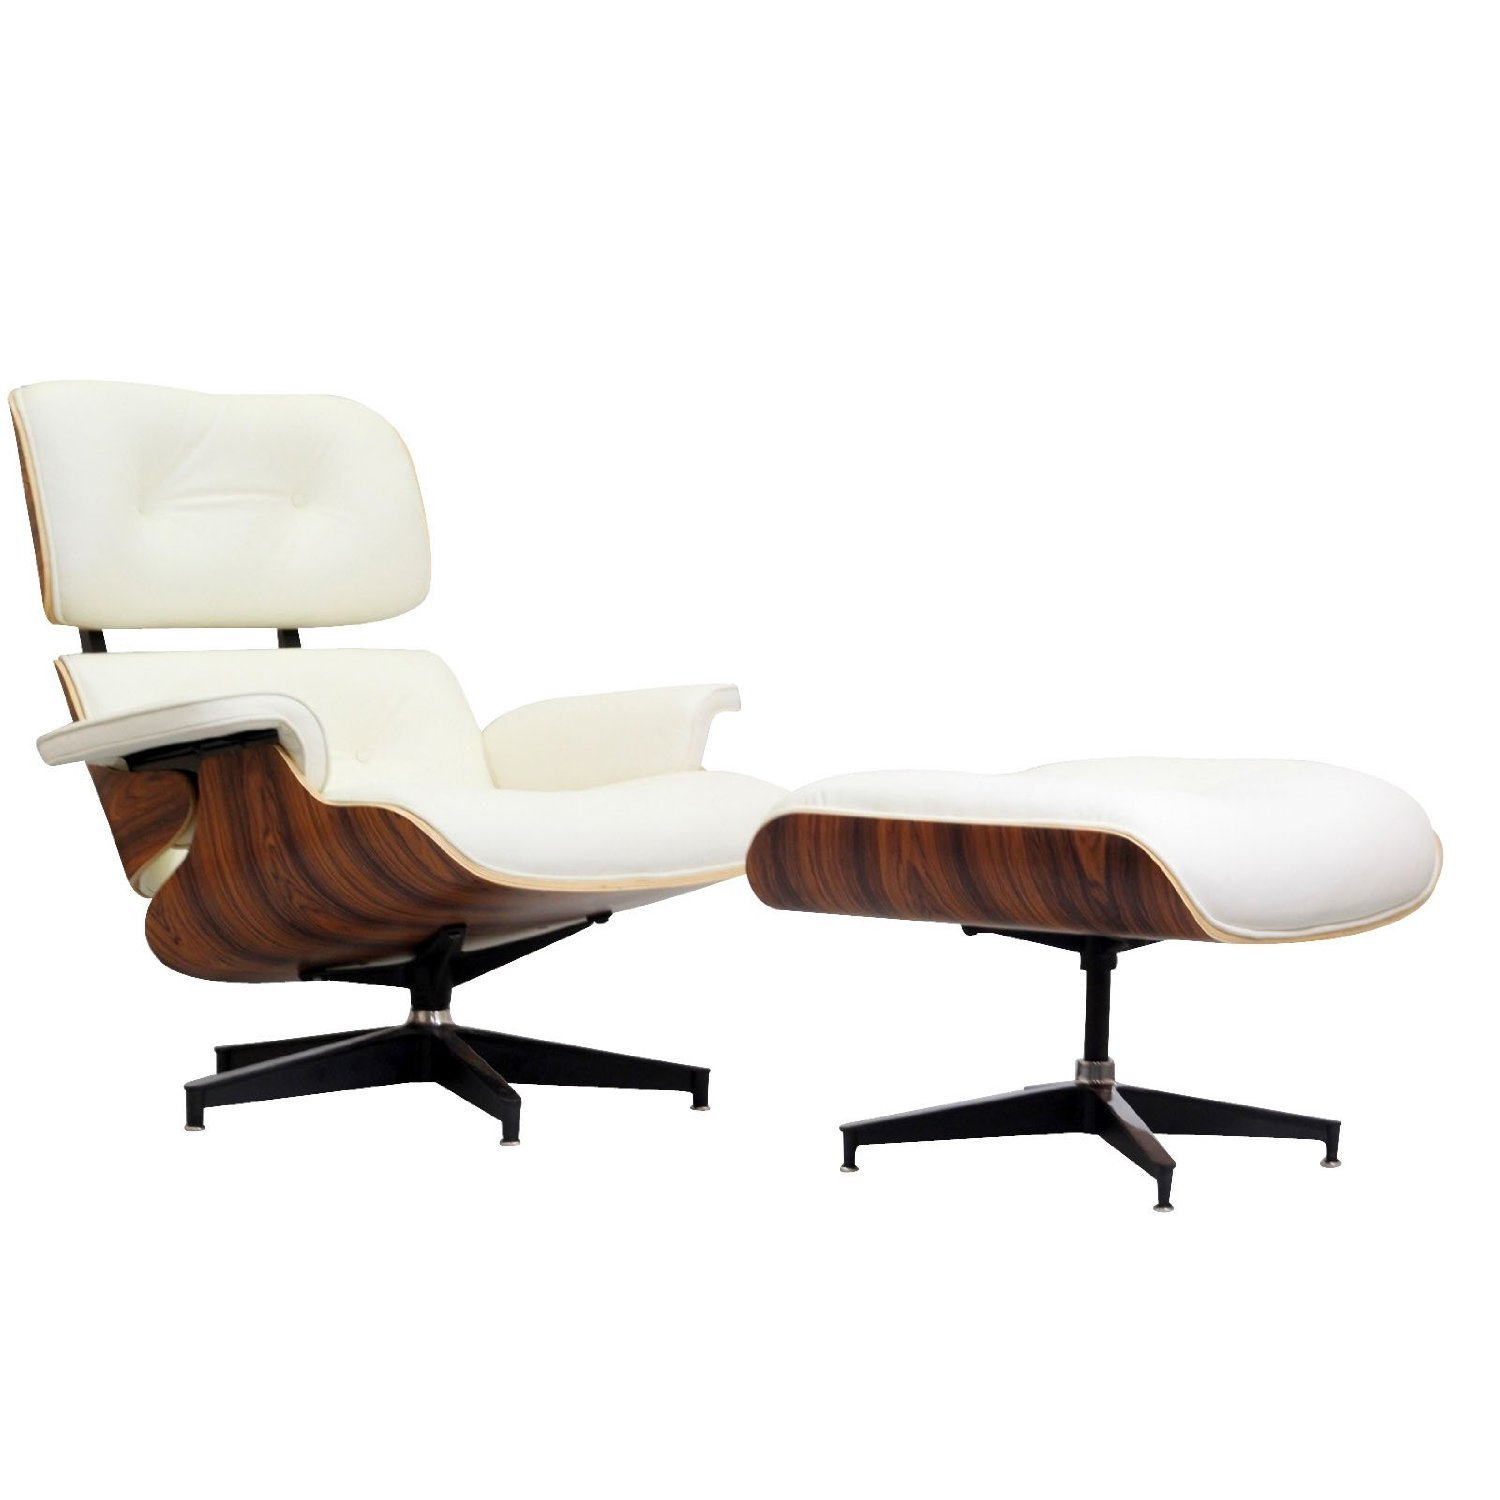 Nicer Furniture® Eames Lounge Chair And Ottoman White 100% Italian Genuine  Full Grain Leather With Walnut Wood Finish Best Seller Eames Lounger  Everyone ...